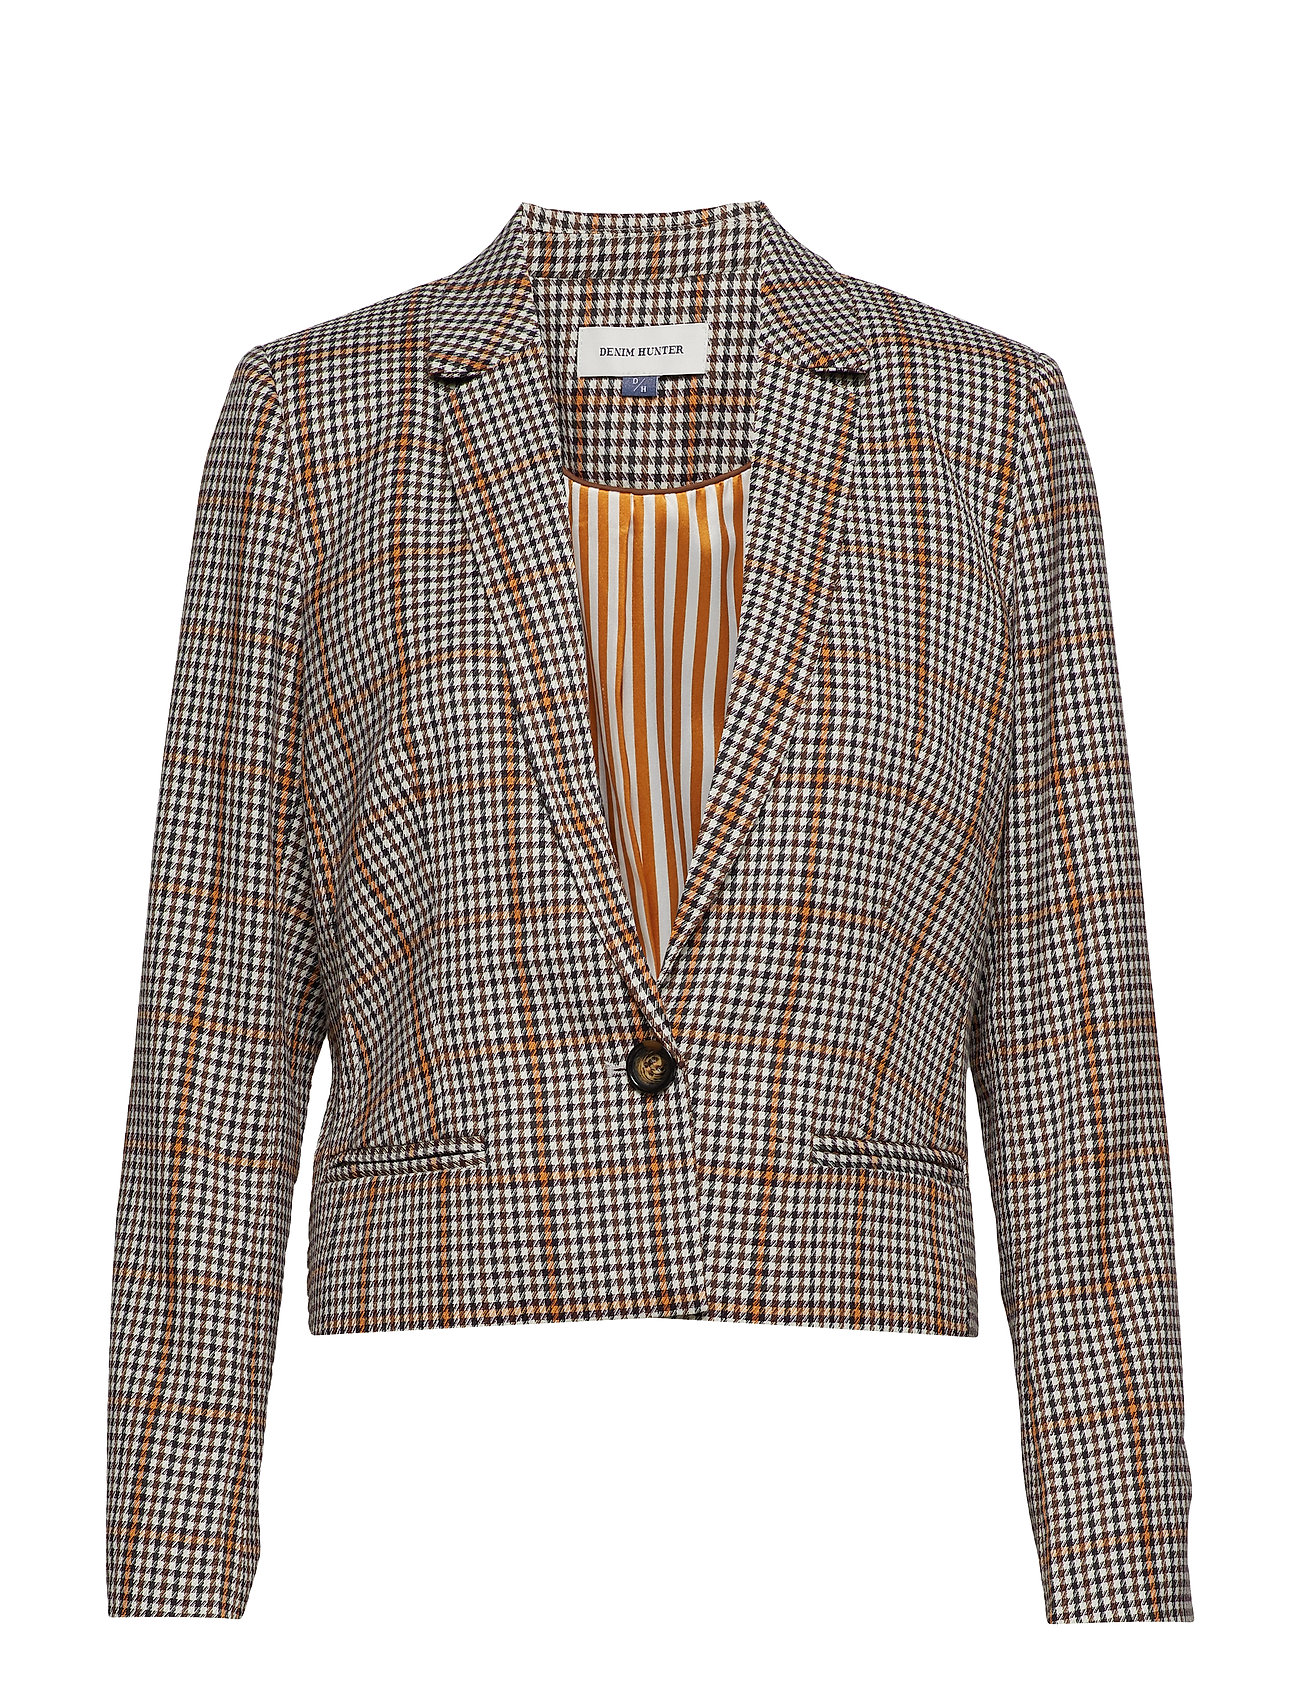 Image of Dhcolombia Blazer Checked Blazer Multi/mønstret Denim Hunter (3489510631)